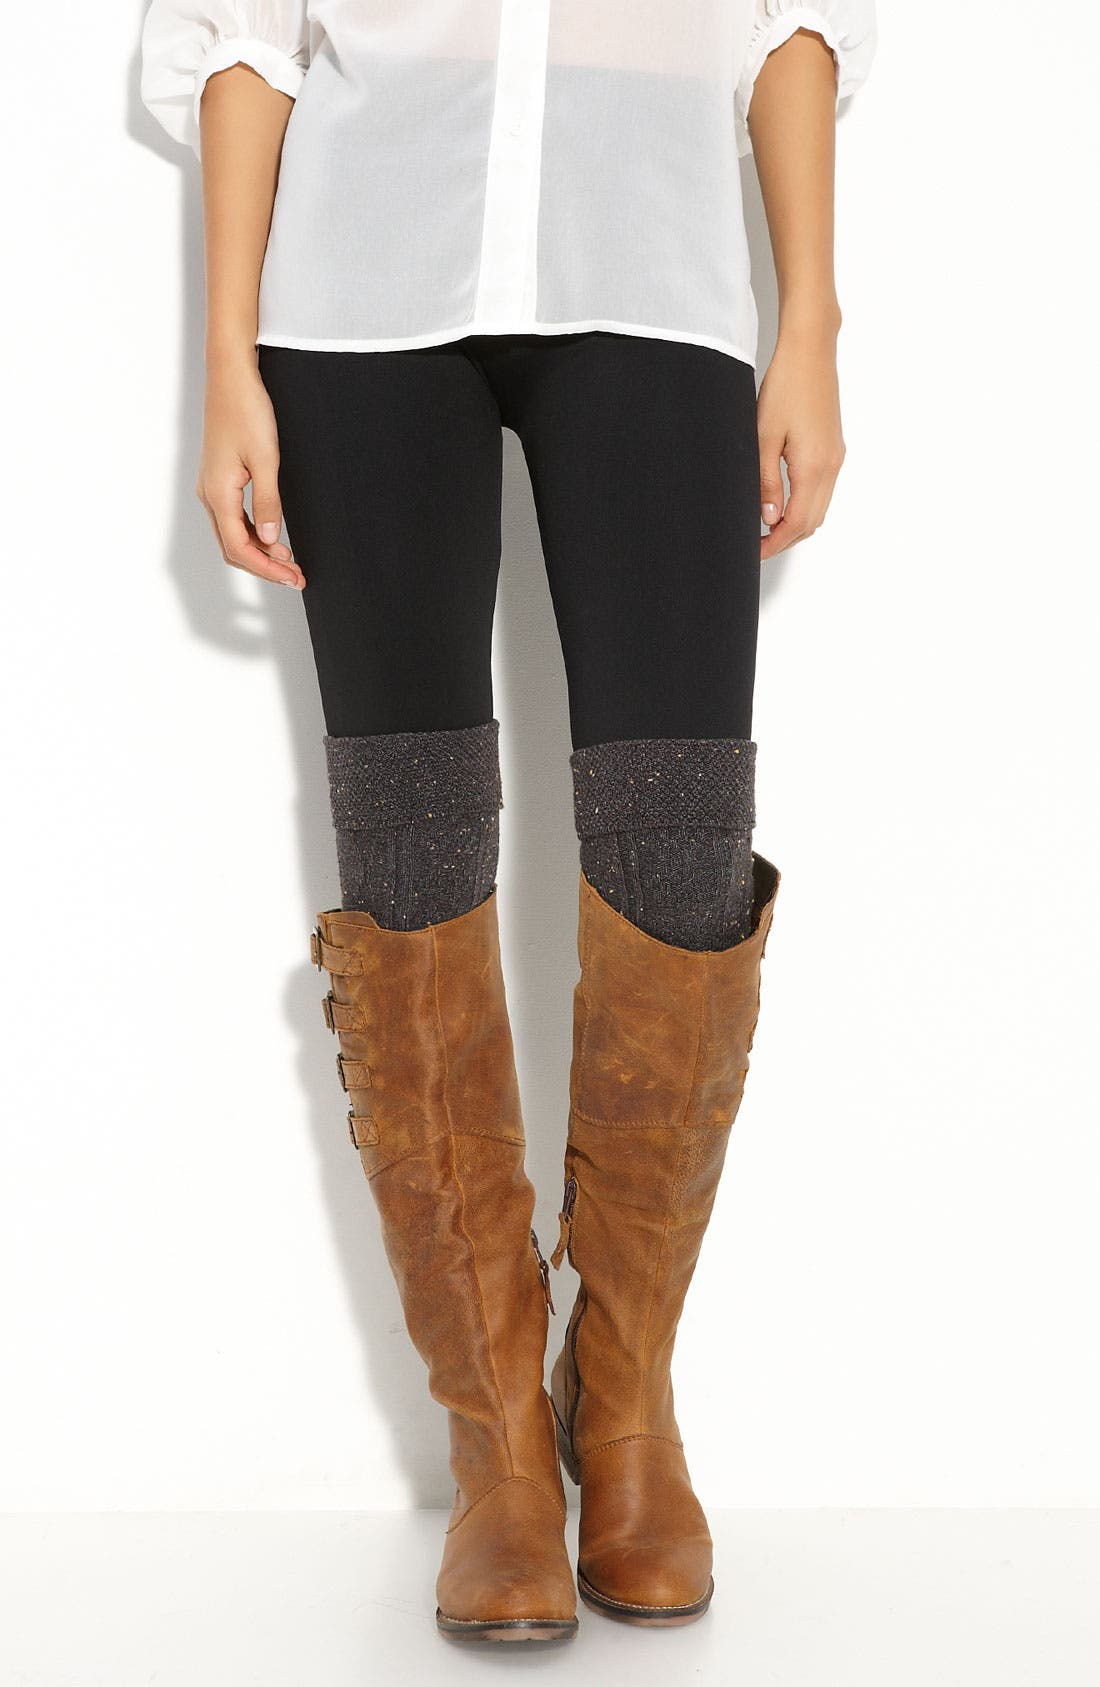 Textured Over the Knee Socks,                         Main,                         color, 021